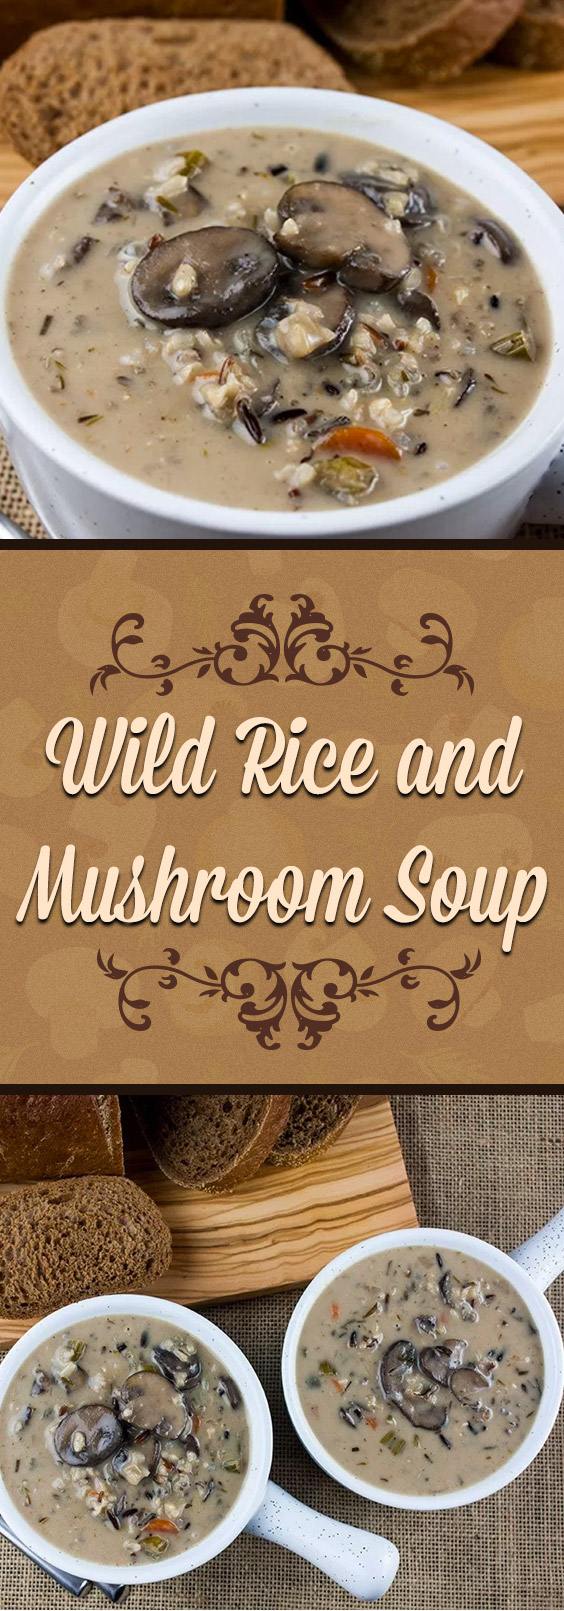 Wild Rice and Mushroom Soup - A creamy, rich, hearty soup that's full of deep earthy flavors. Perfect for staying warm this winter.